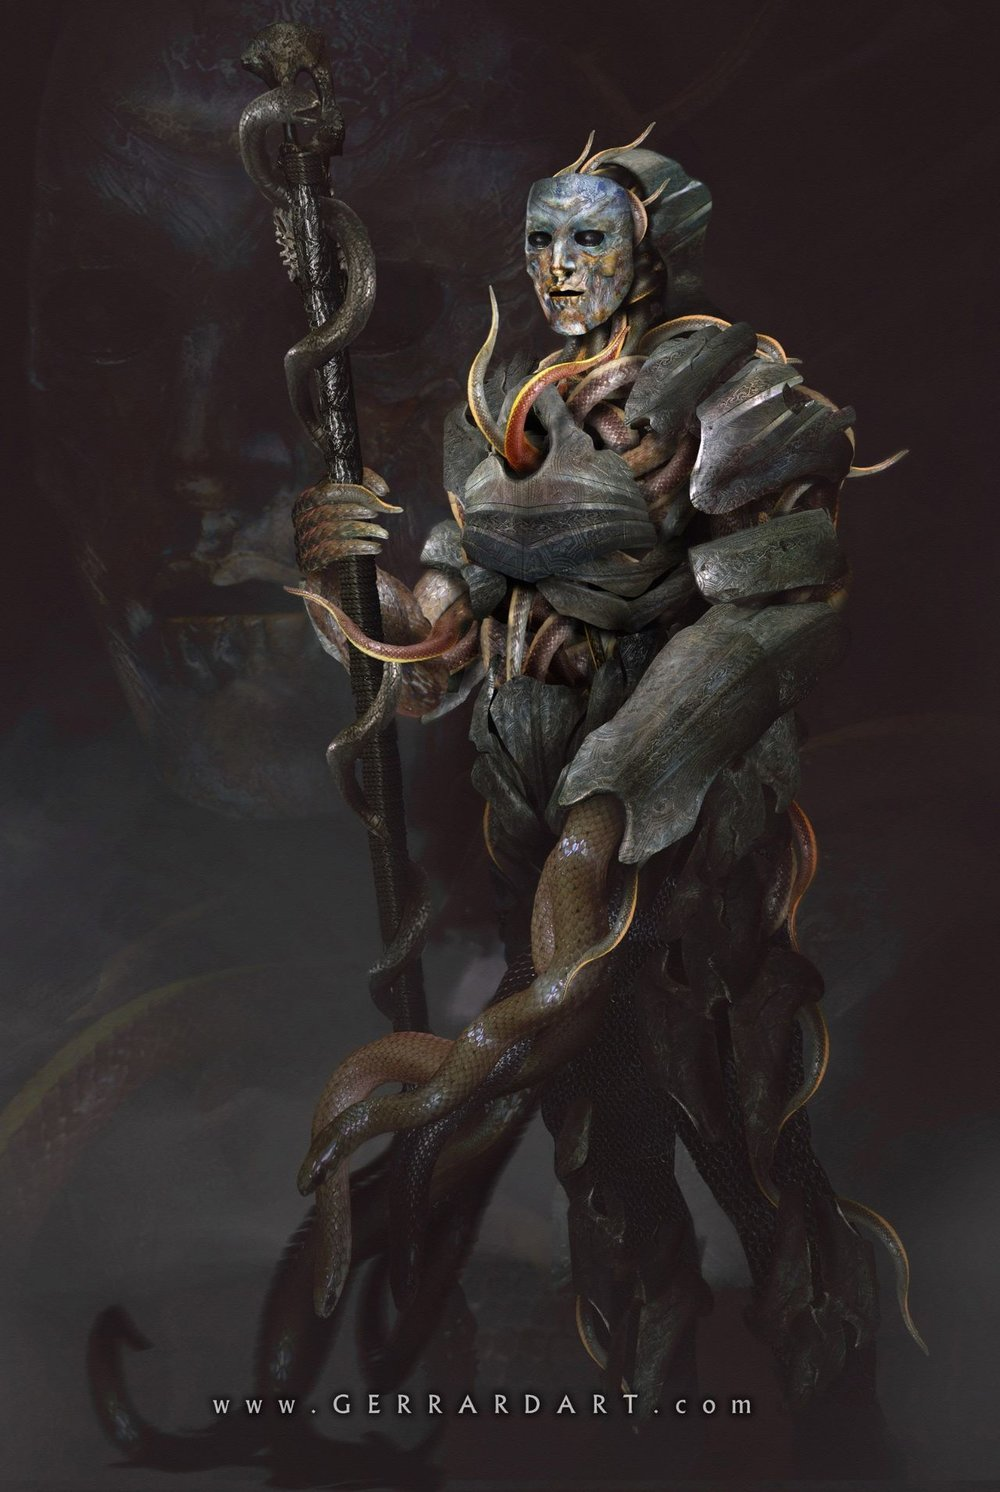 badass-masters-of-the-universe-concept-art-gives-the-villains-a-dark-horrific-redesign3